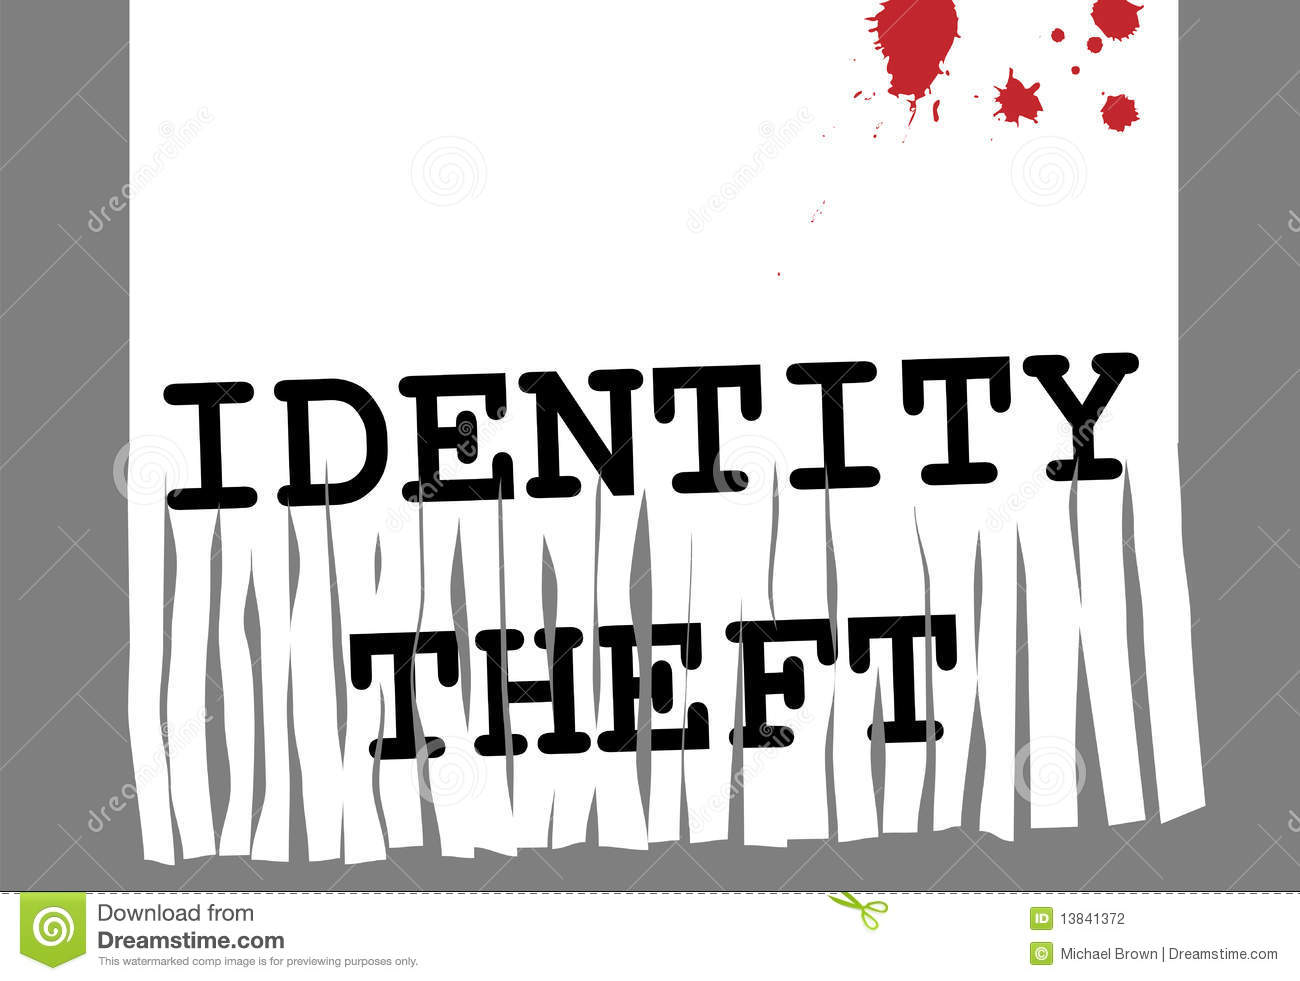 essay on identity theft